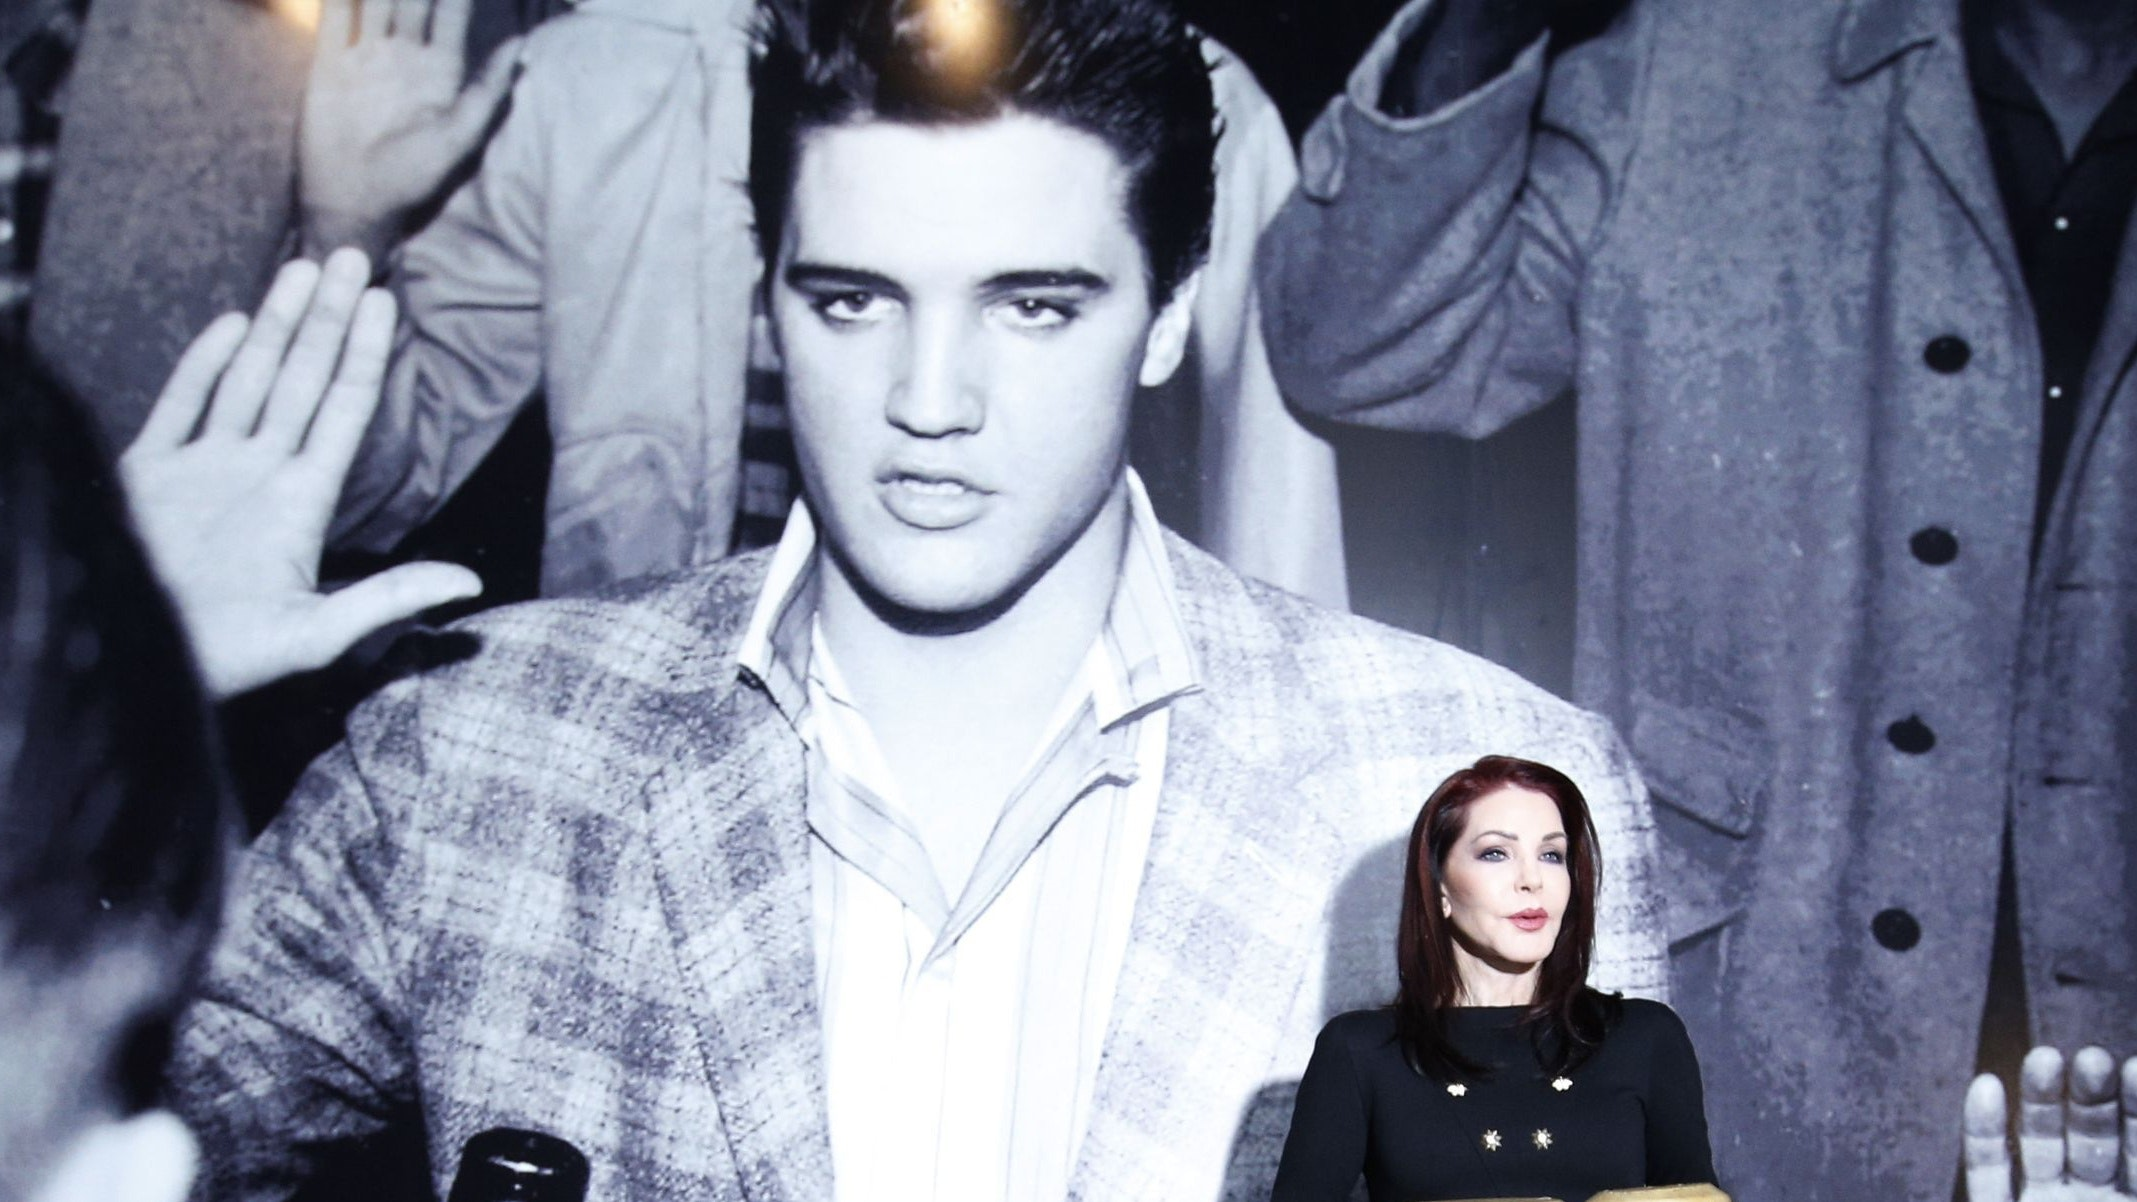 Priscilla Presley to appear on stage at Elvis concert in Glasgow